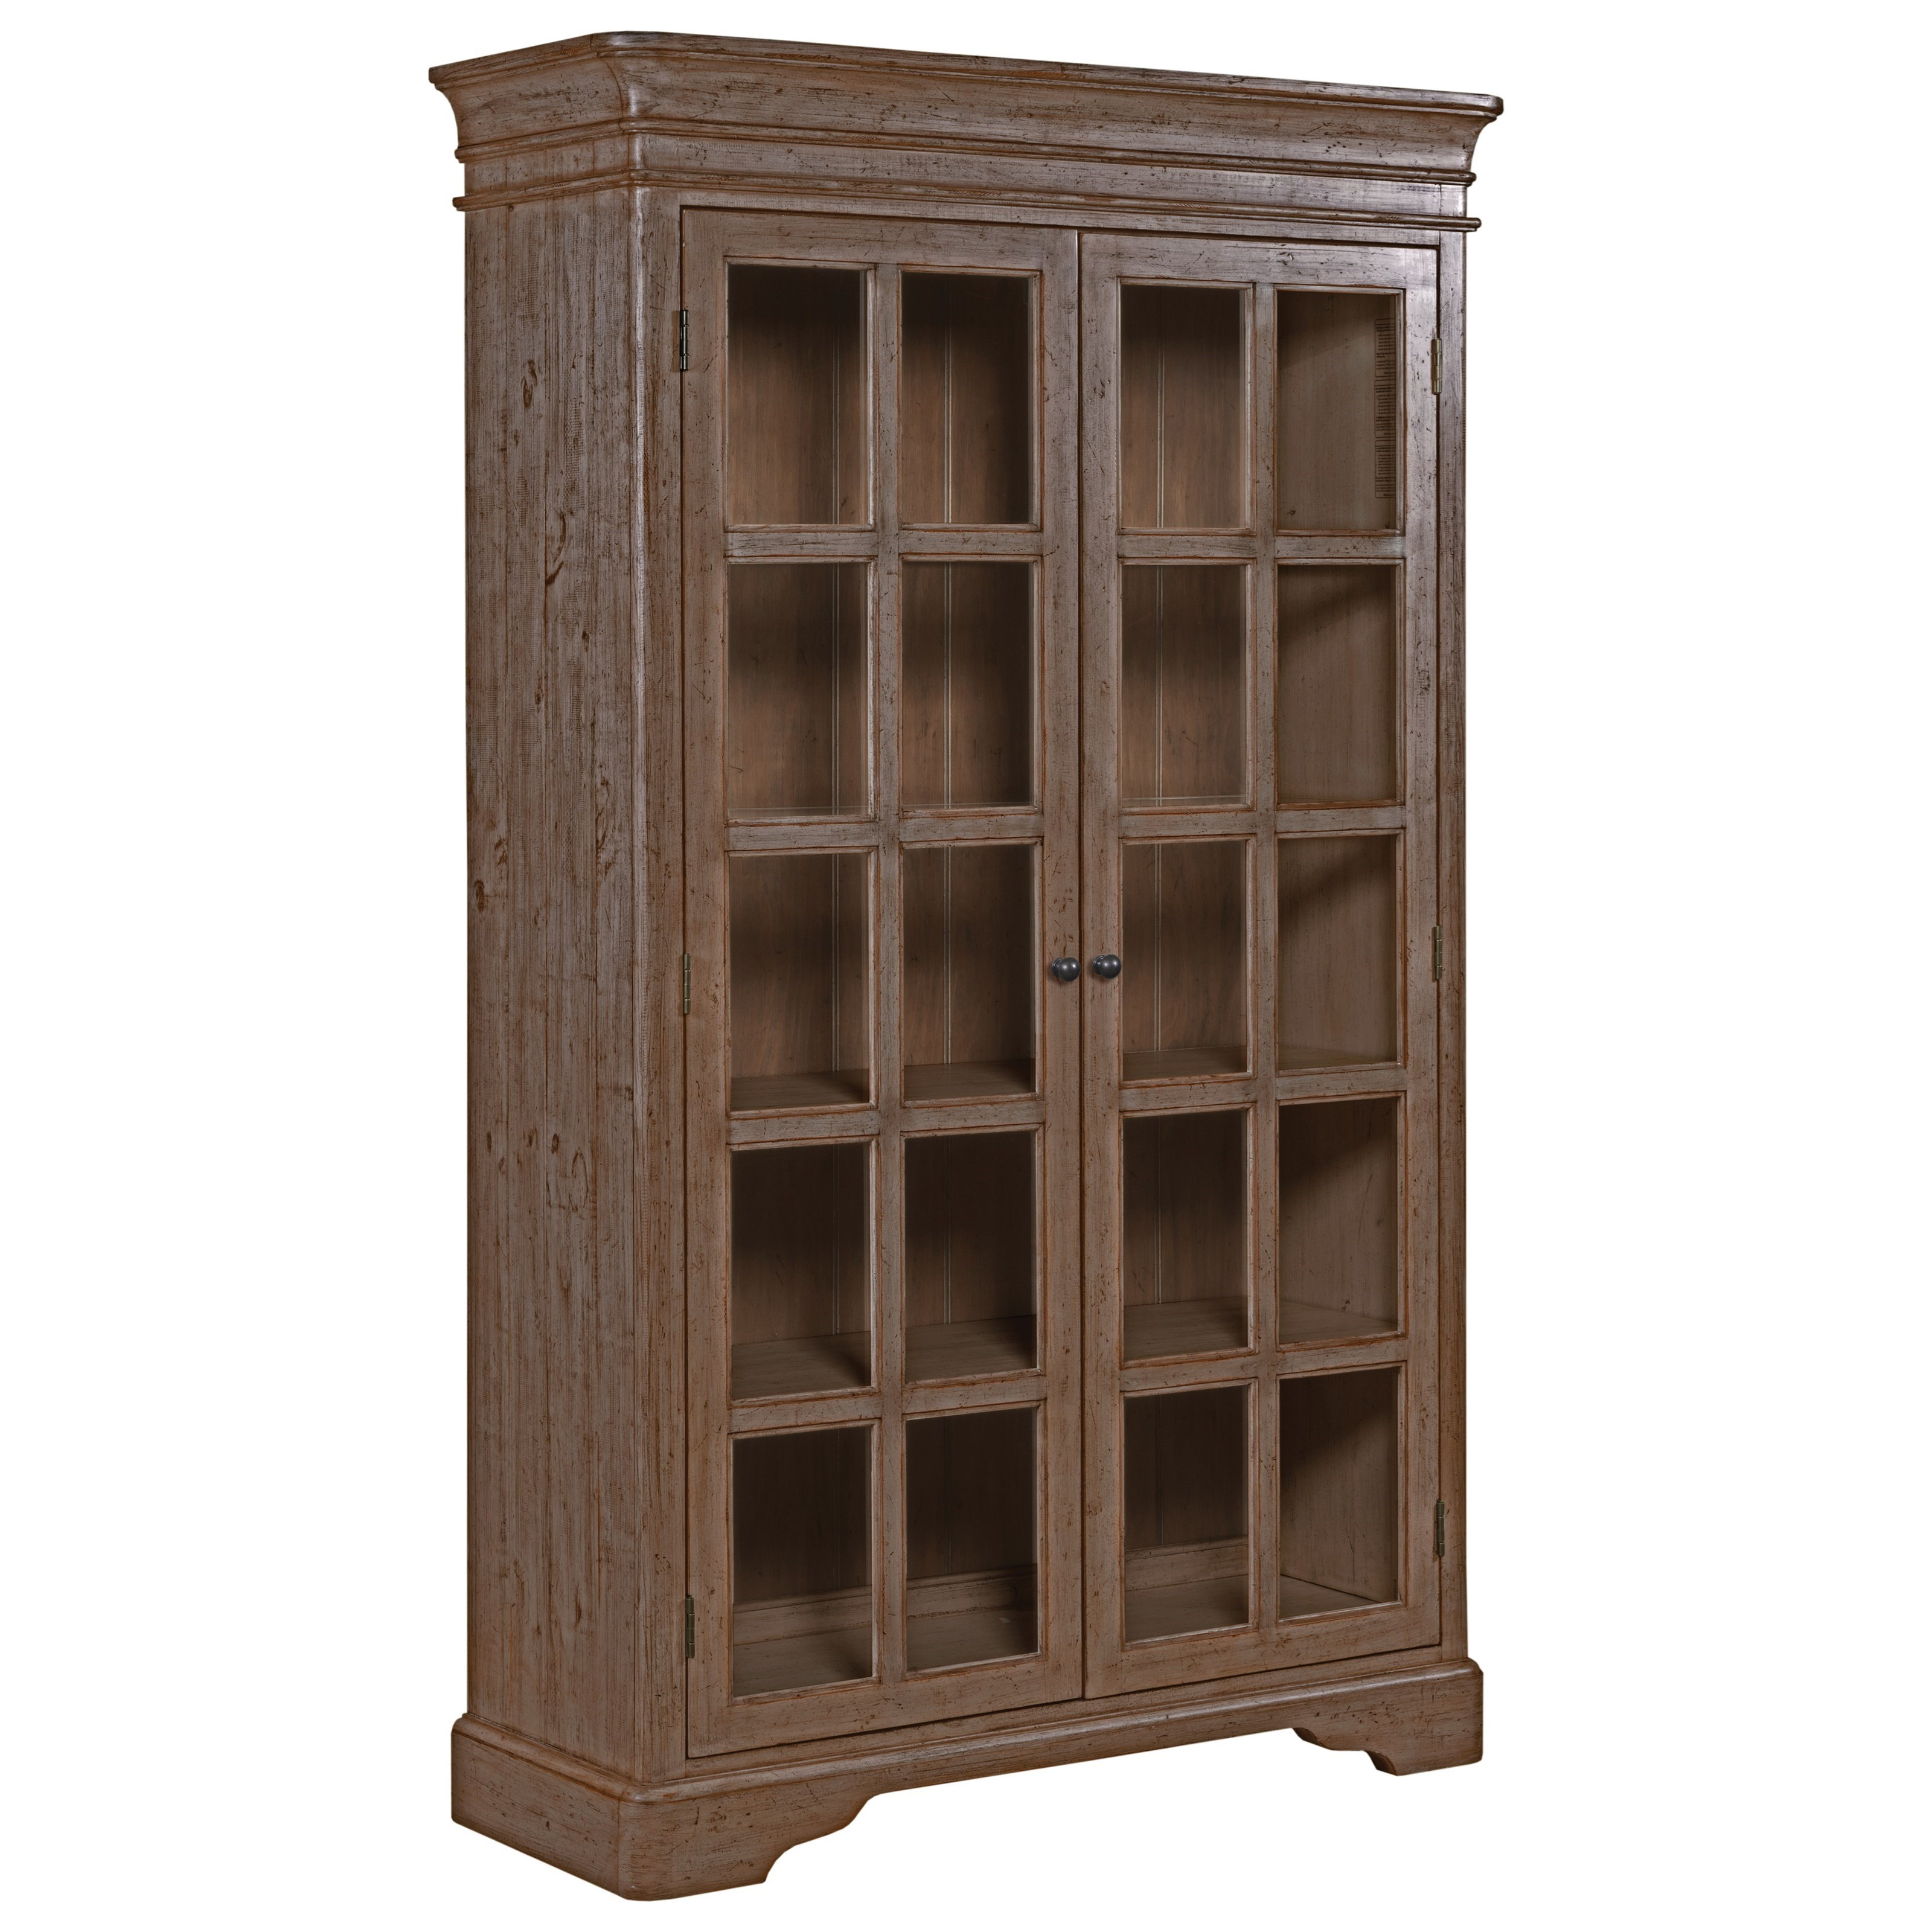 Weatherford Clifton China Cabinet                        by Kincaid Furniture at Johnny Janosik